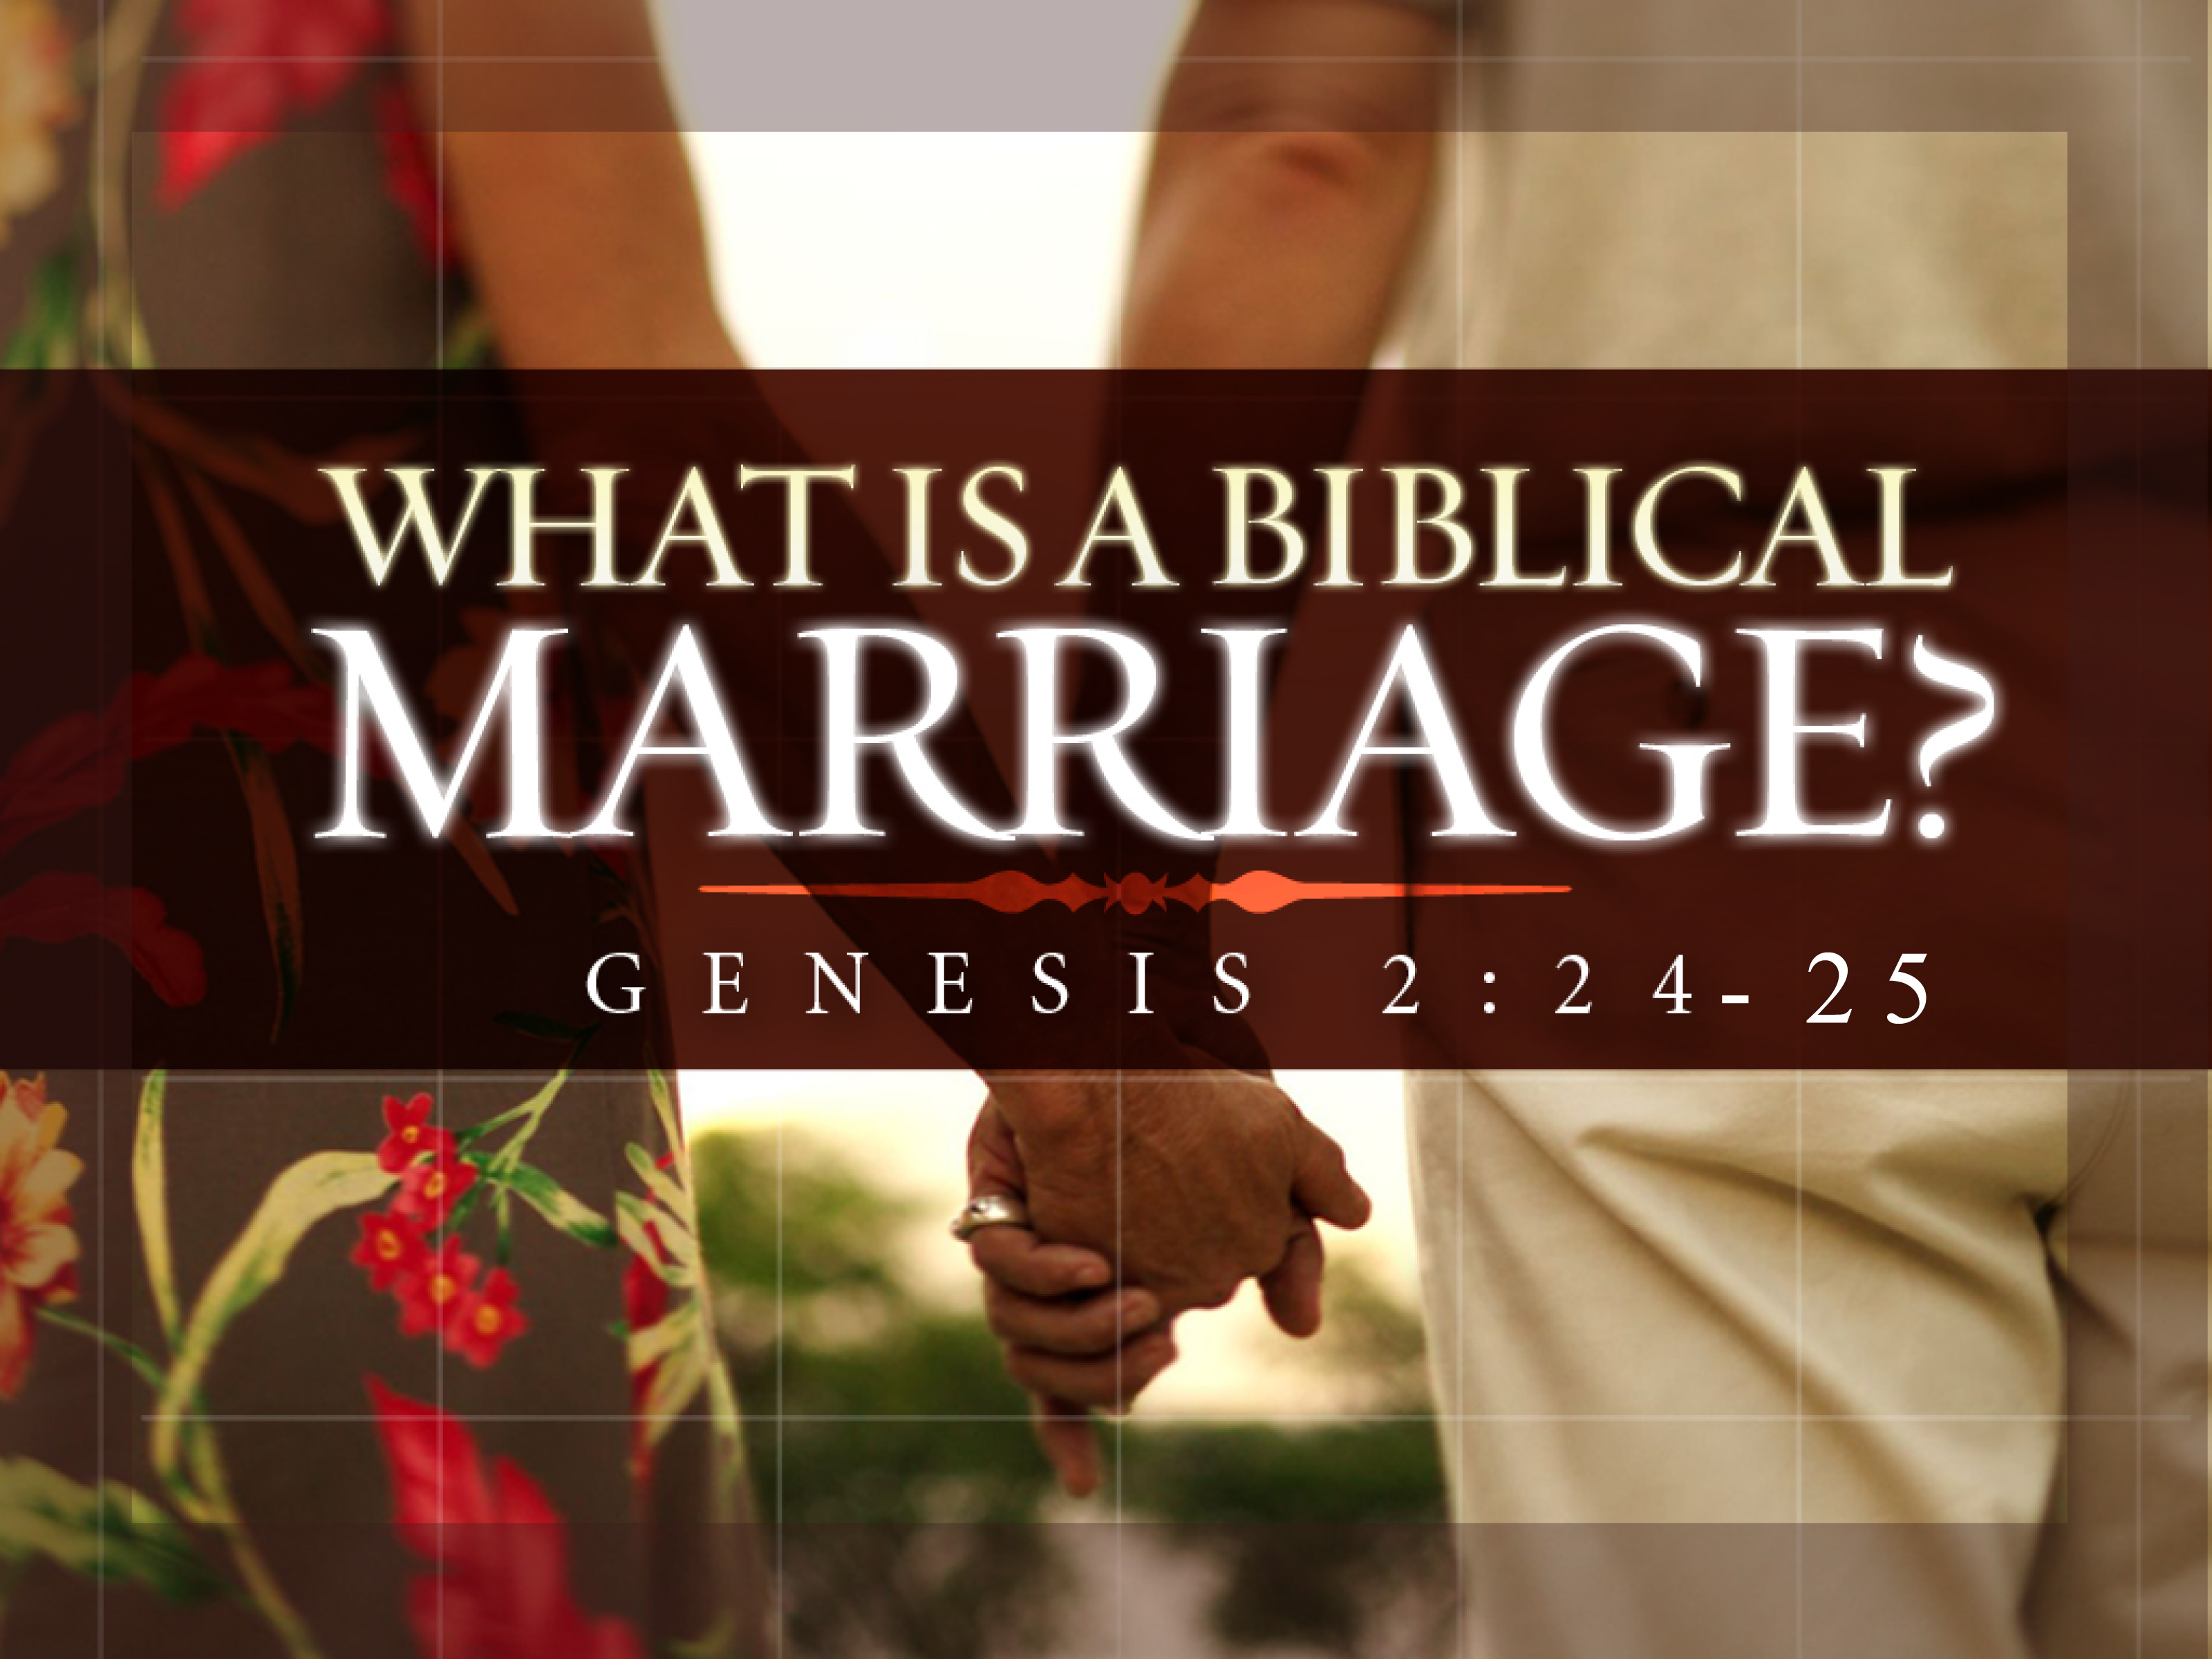 marriage: - what constitutes marriage according to the bible